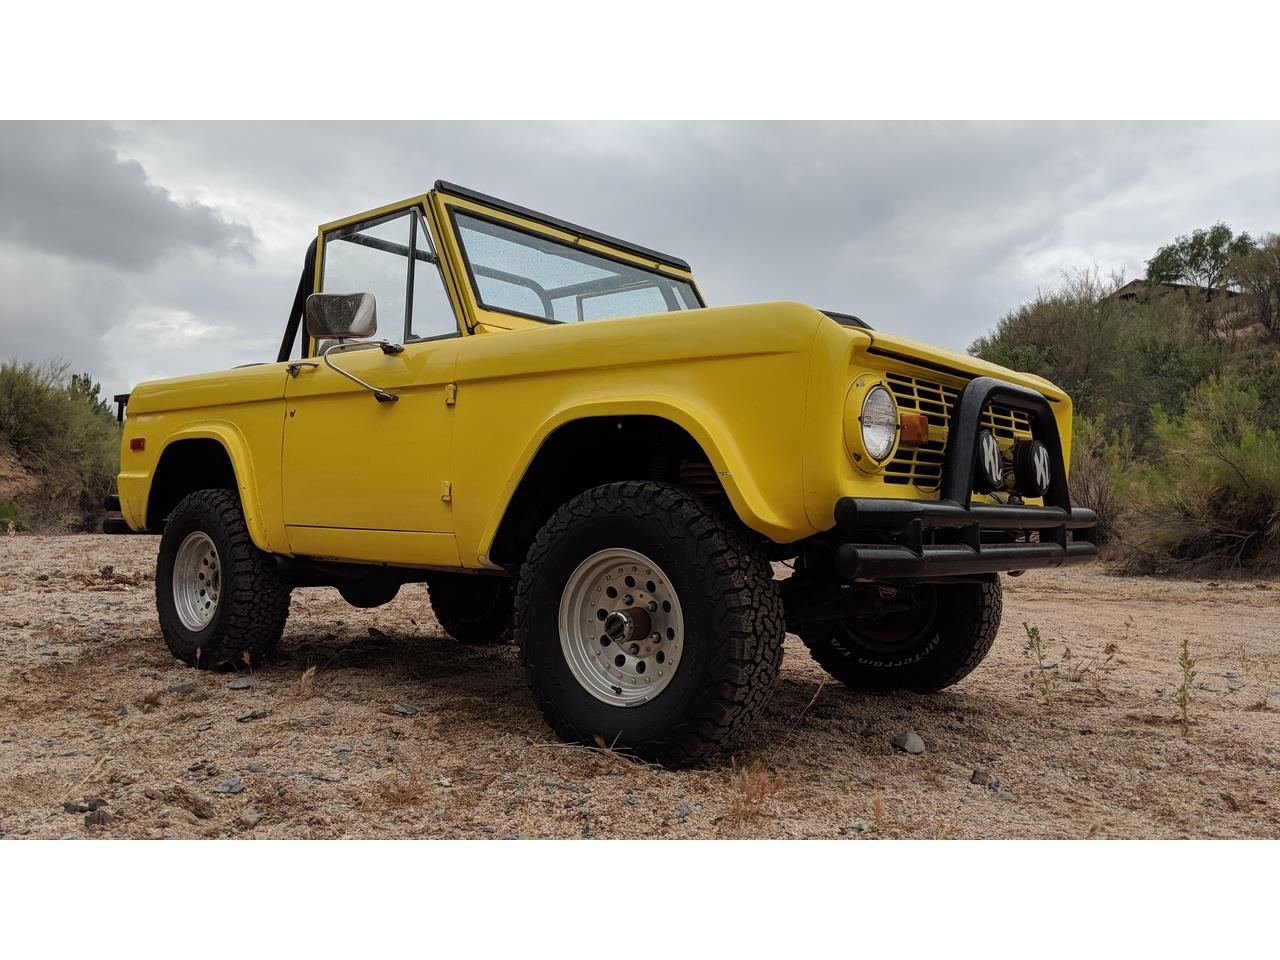 Large Picture of Classic '71 Bronco located in Arizona - $22,500.00 Offered by a Private Seller - NQFY